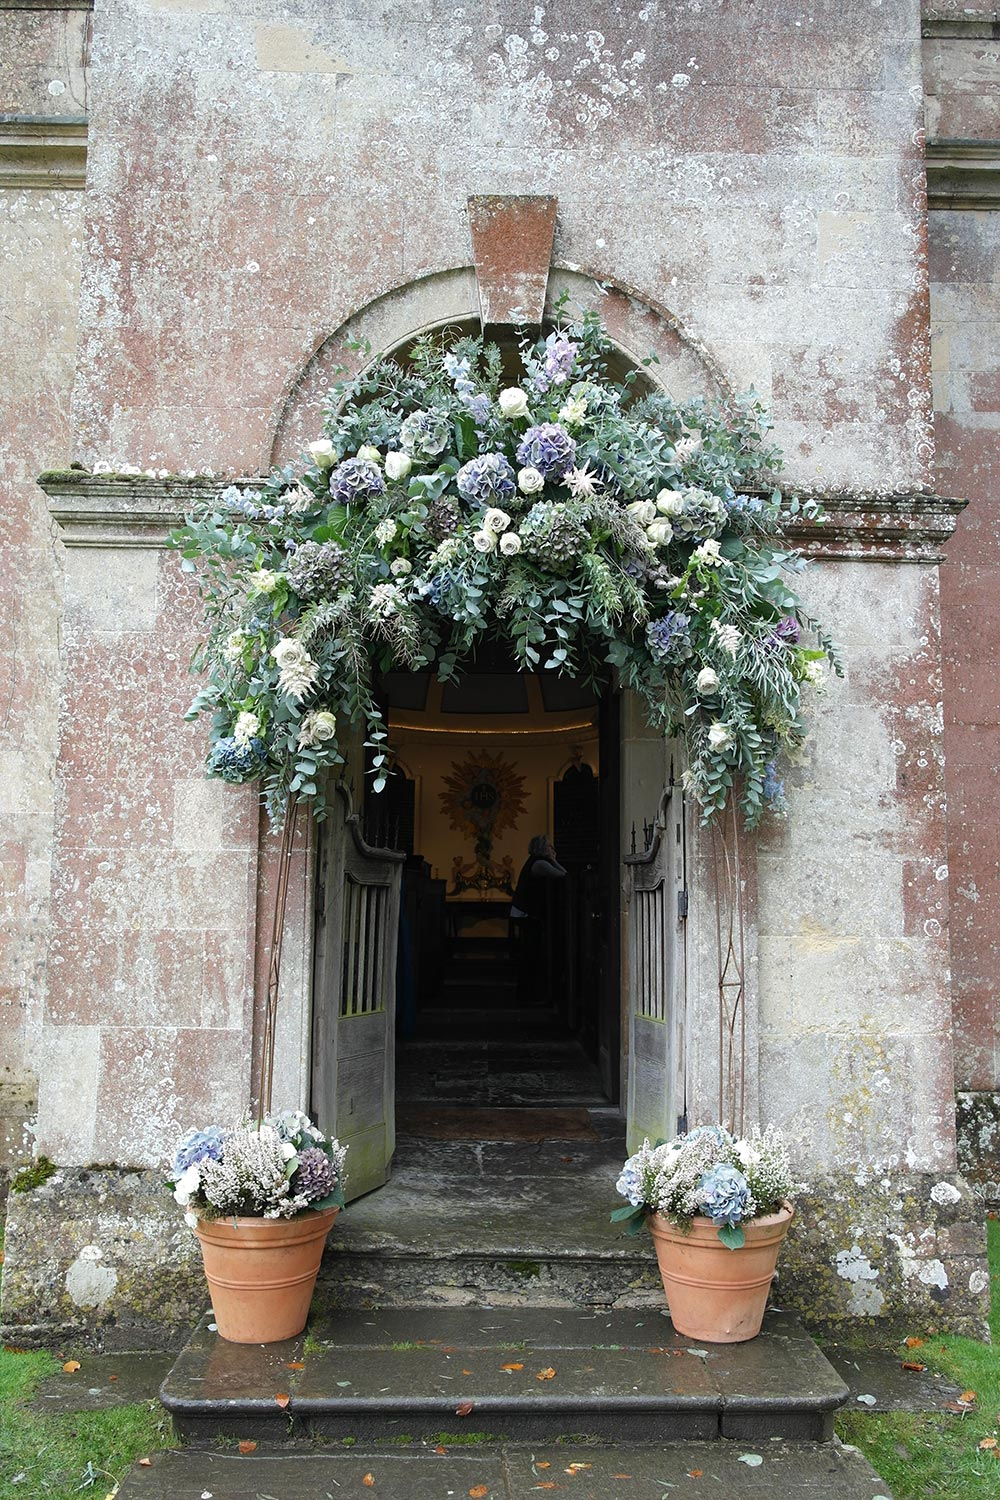 6-babington-house-chapel-arch-flowers-hydrangeas-roses-wilde-thyme-florist-jersey-wedding-events-styling.jpg